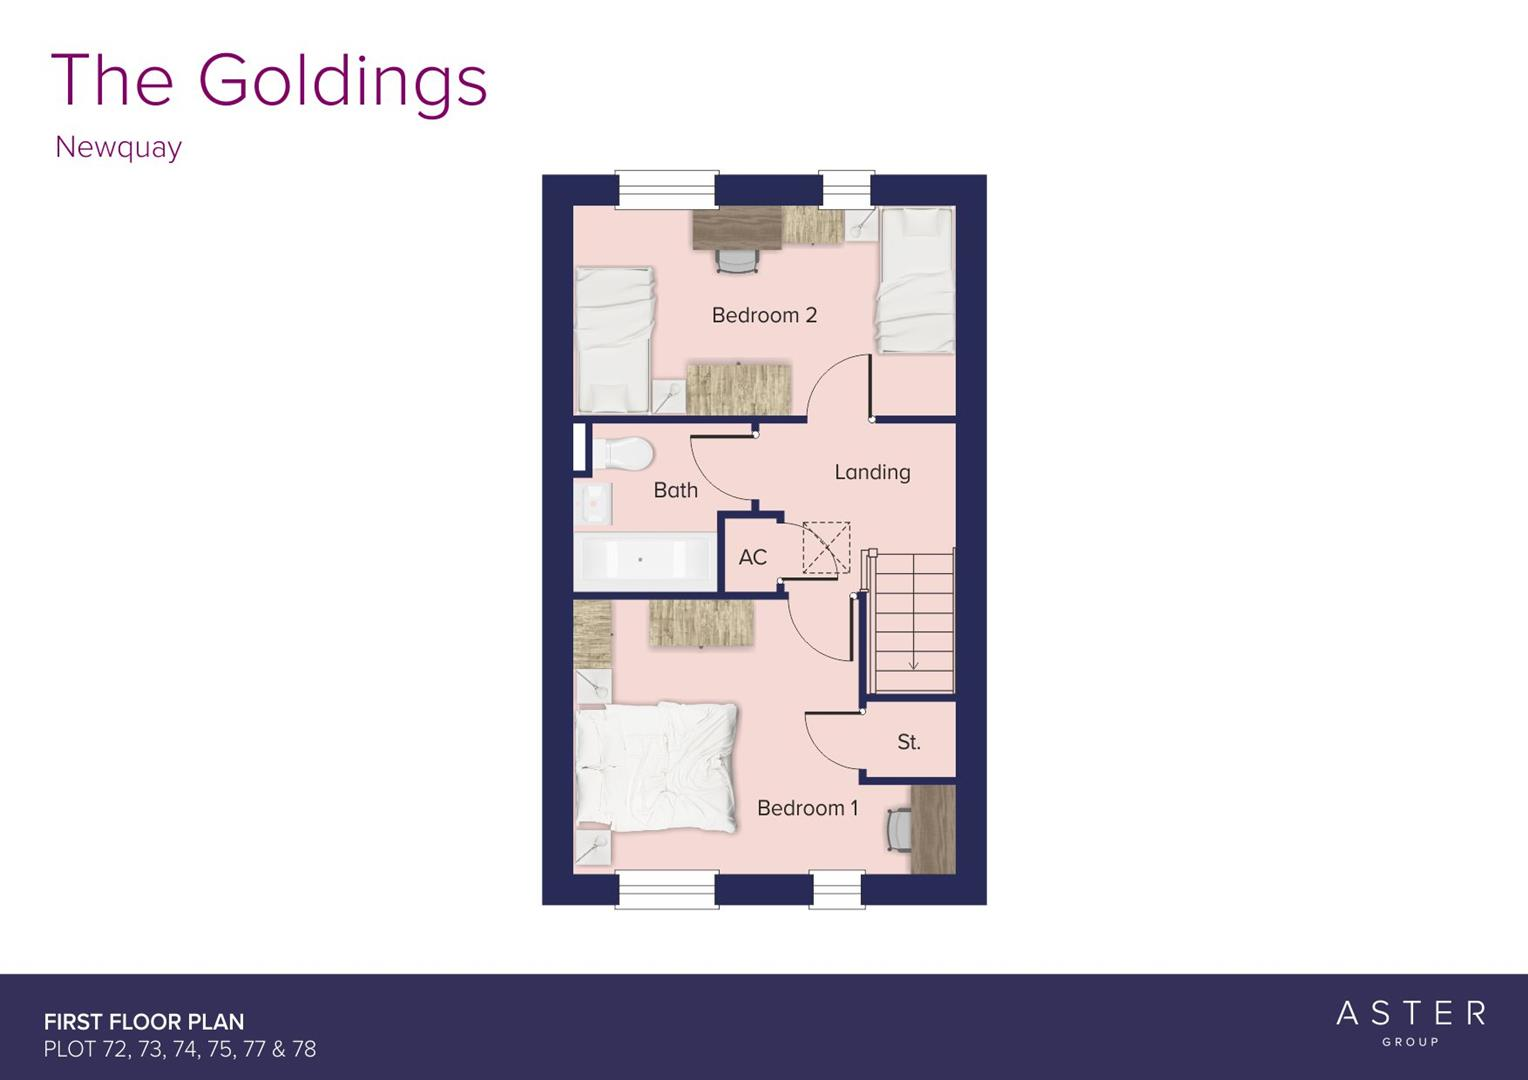 24068A Aster The Goldings Homes Web Gallery8.jpg